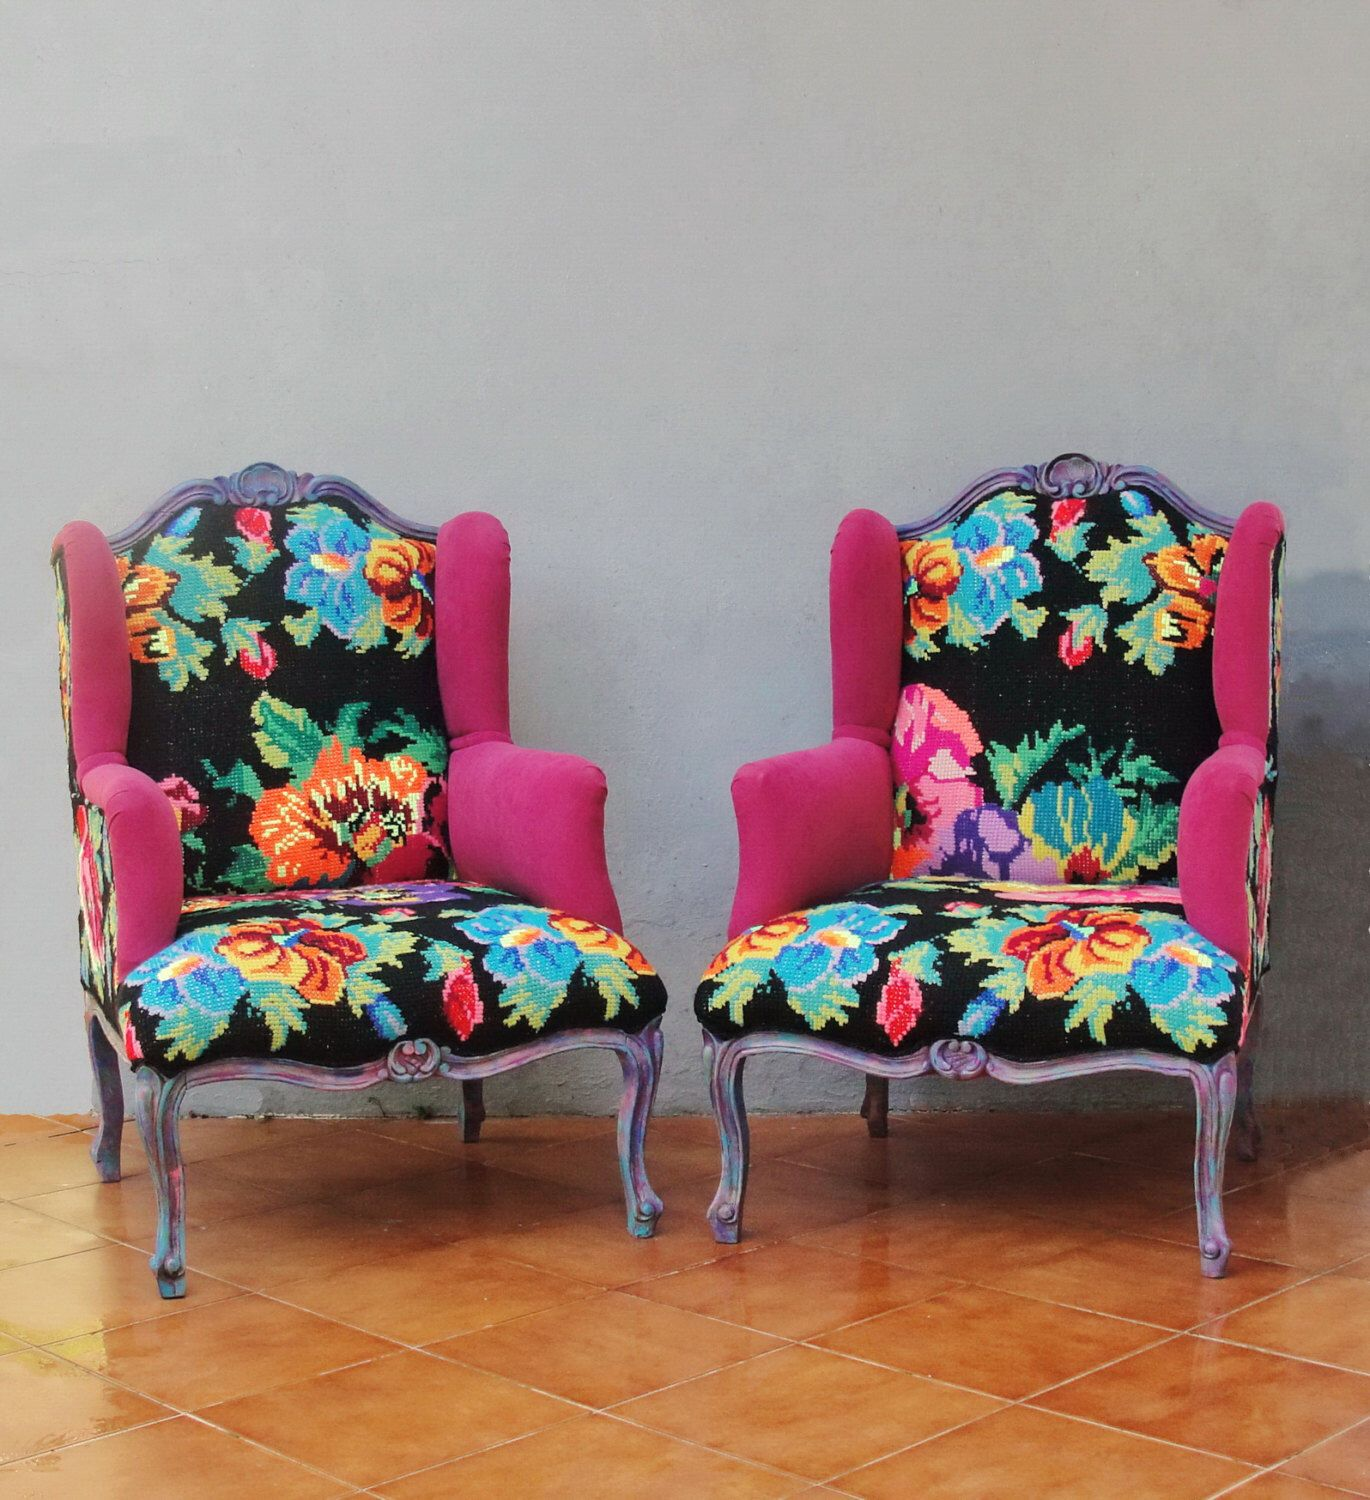 Embroidered armchair baroque flowers and woodwork bohemian